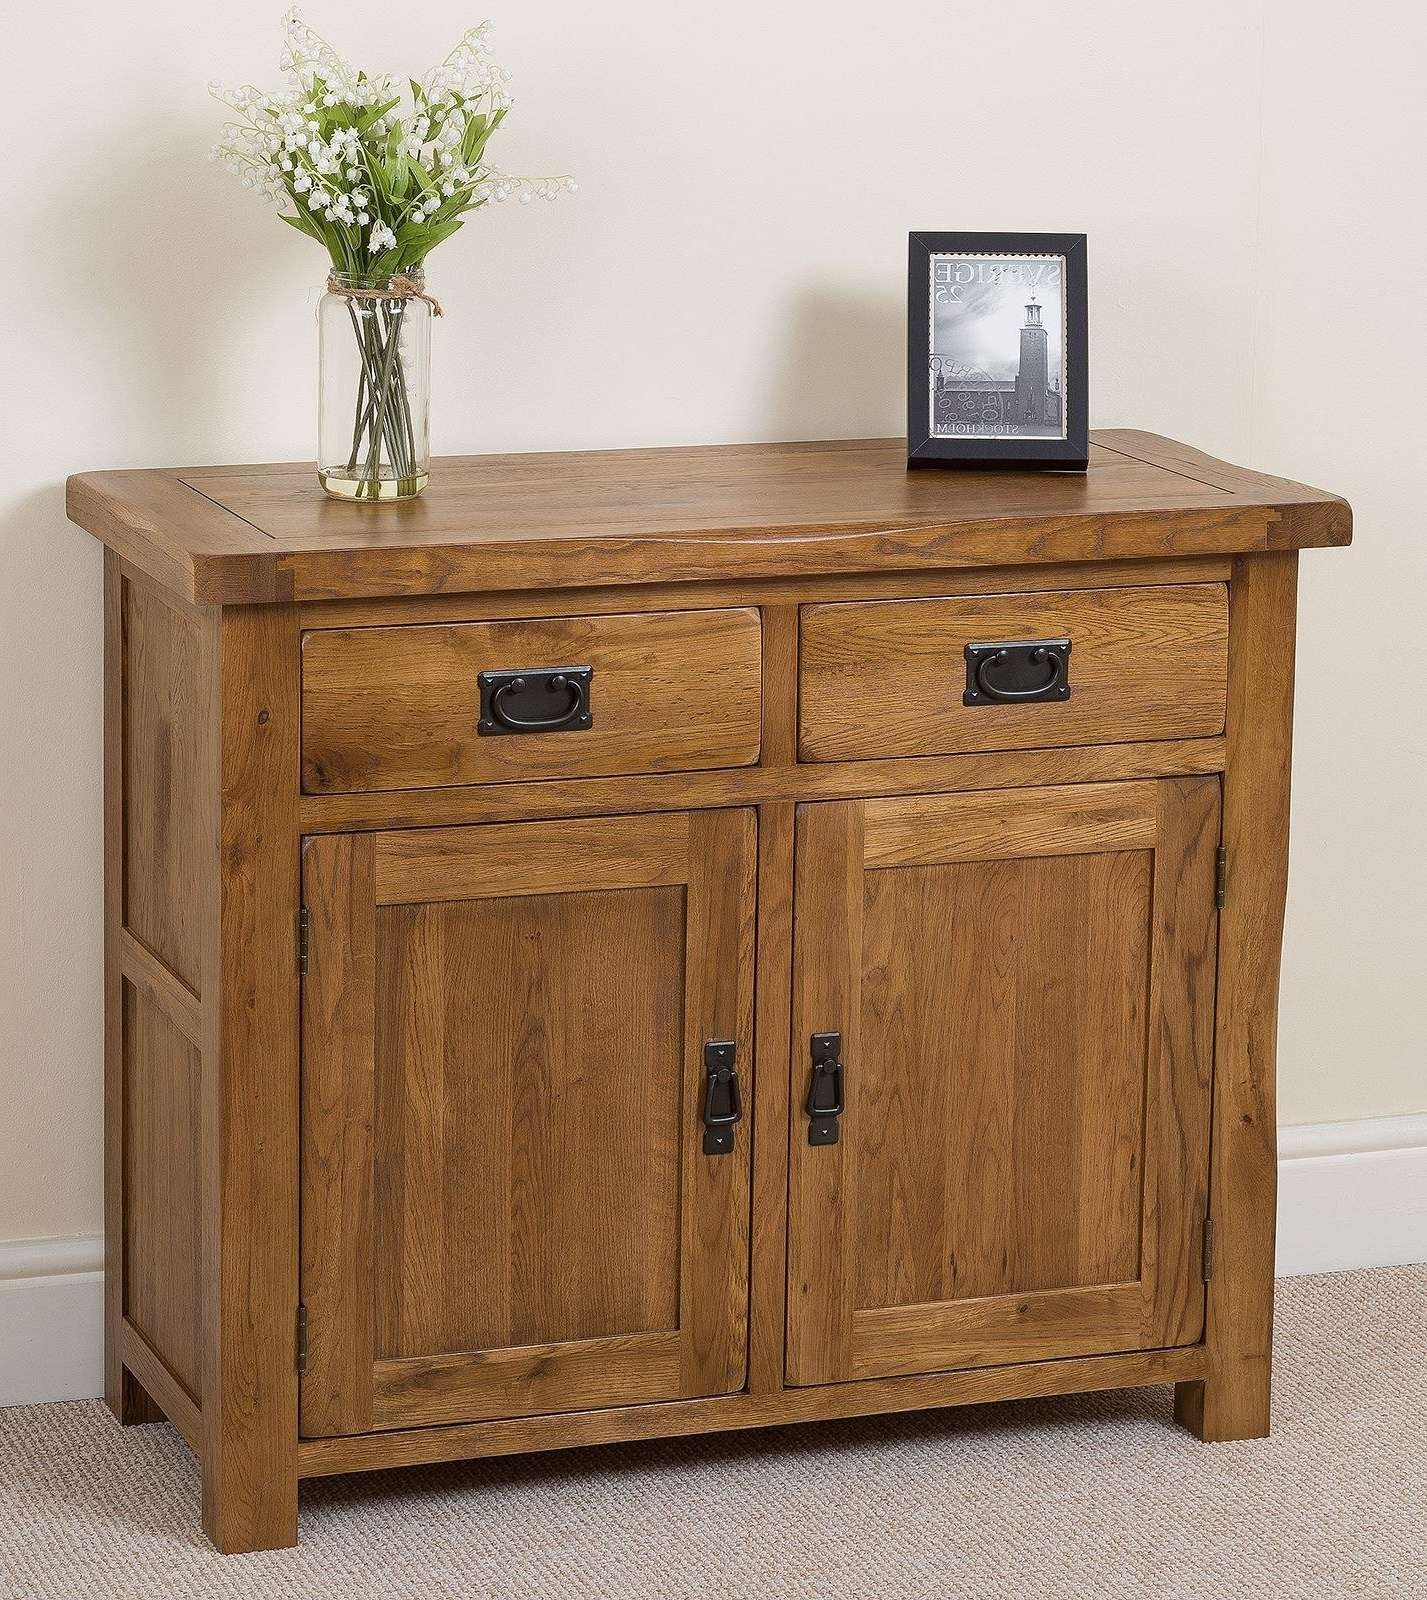 Find The Harmony Rustic Sideboard — Rocket Uncle Rocket Uncle For Solid Wood Sideboards (View 9 of 20)